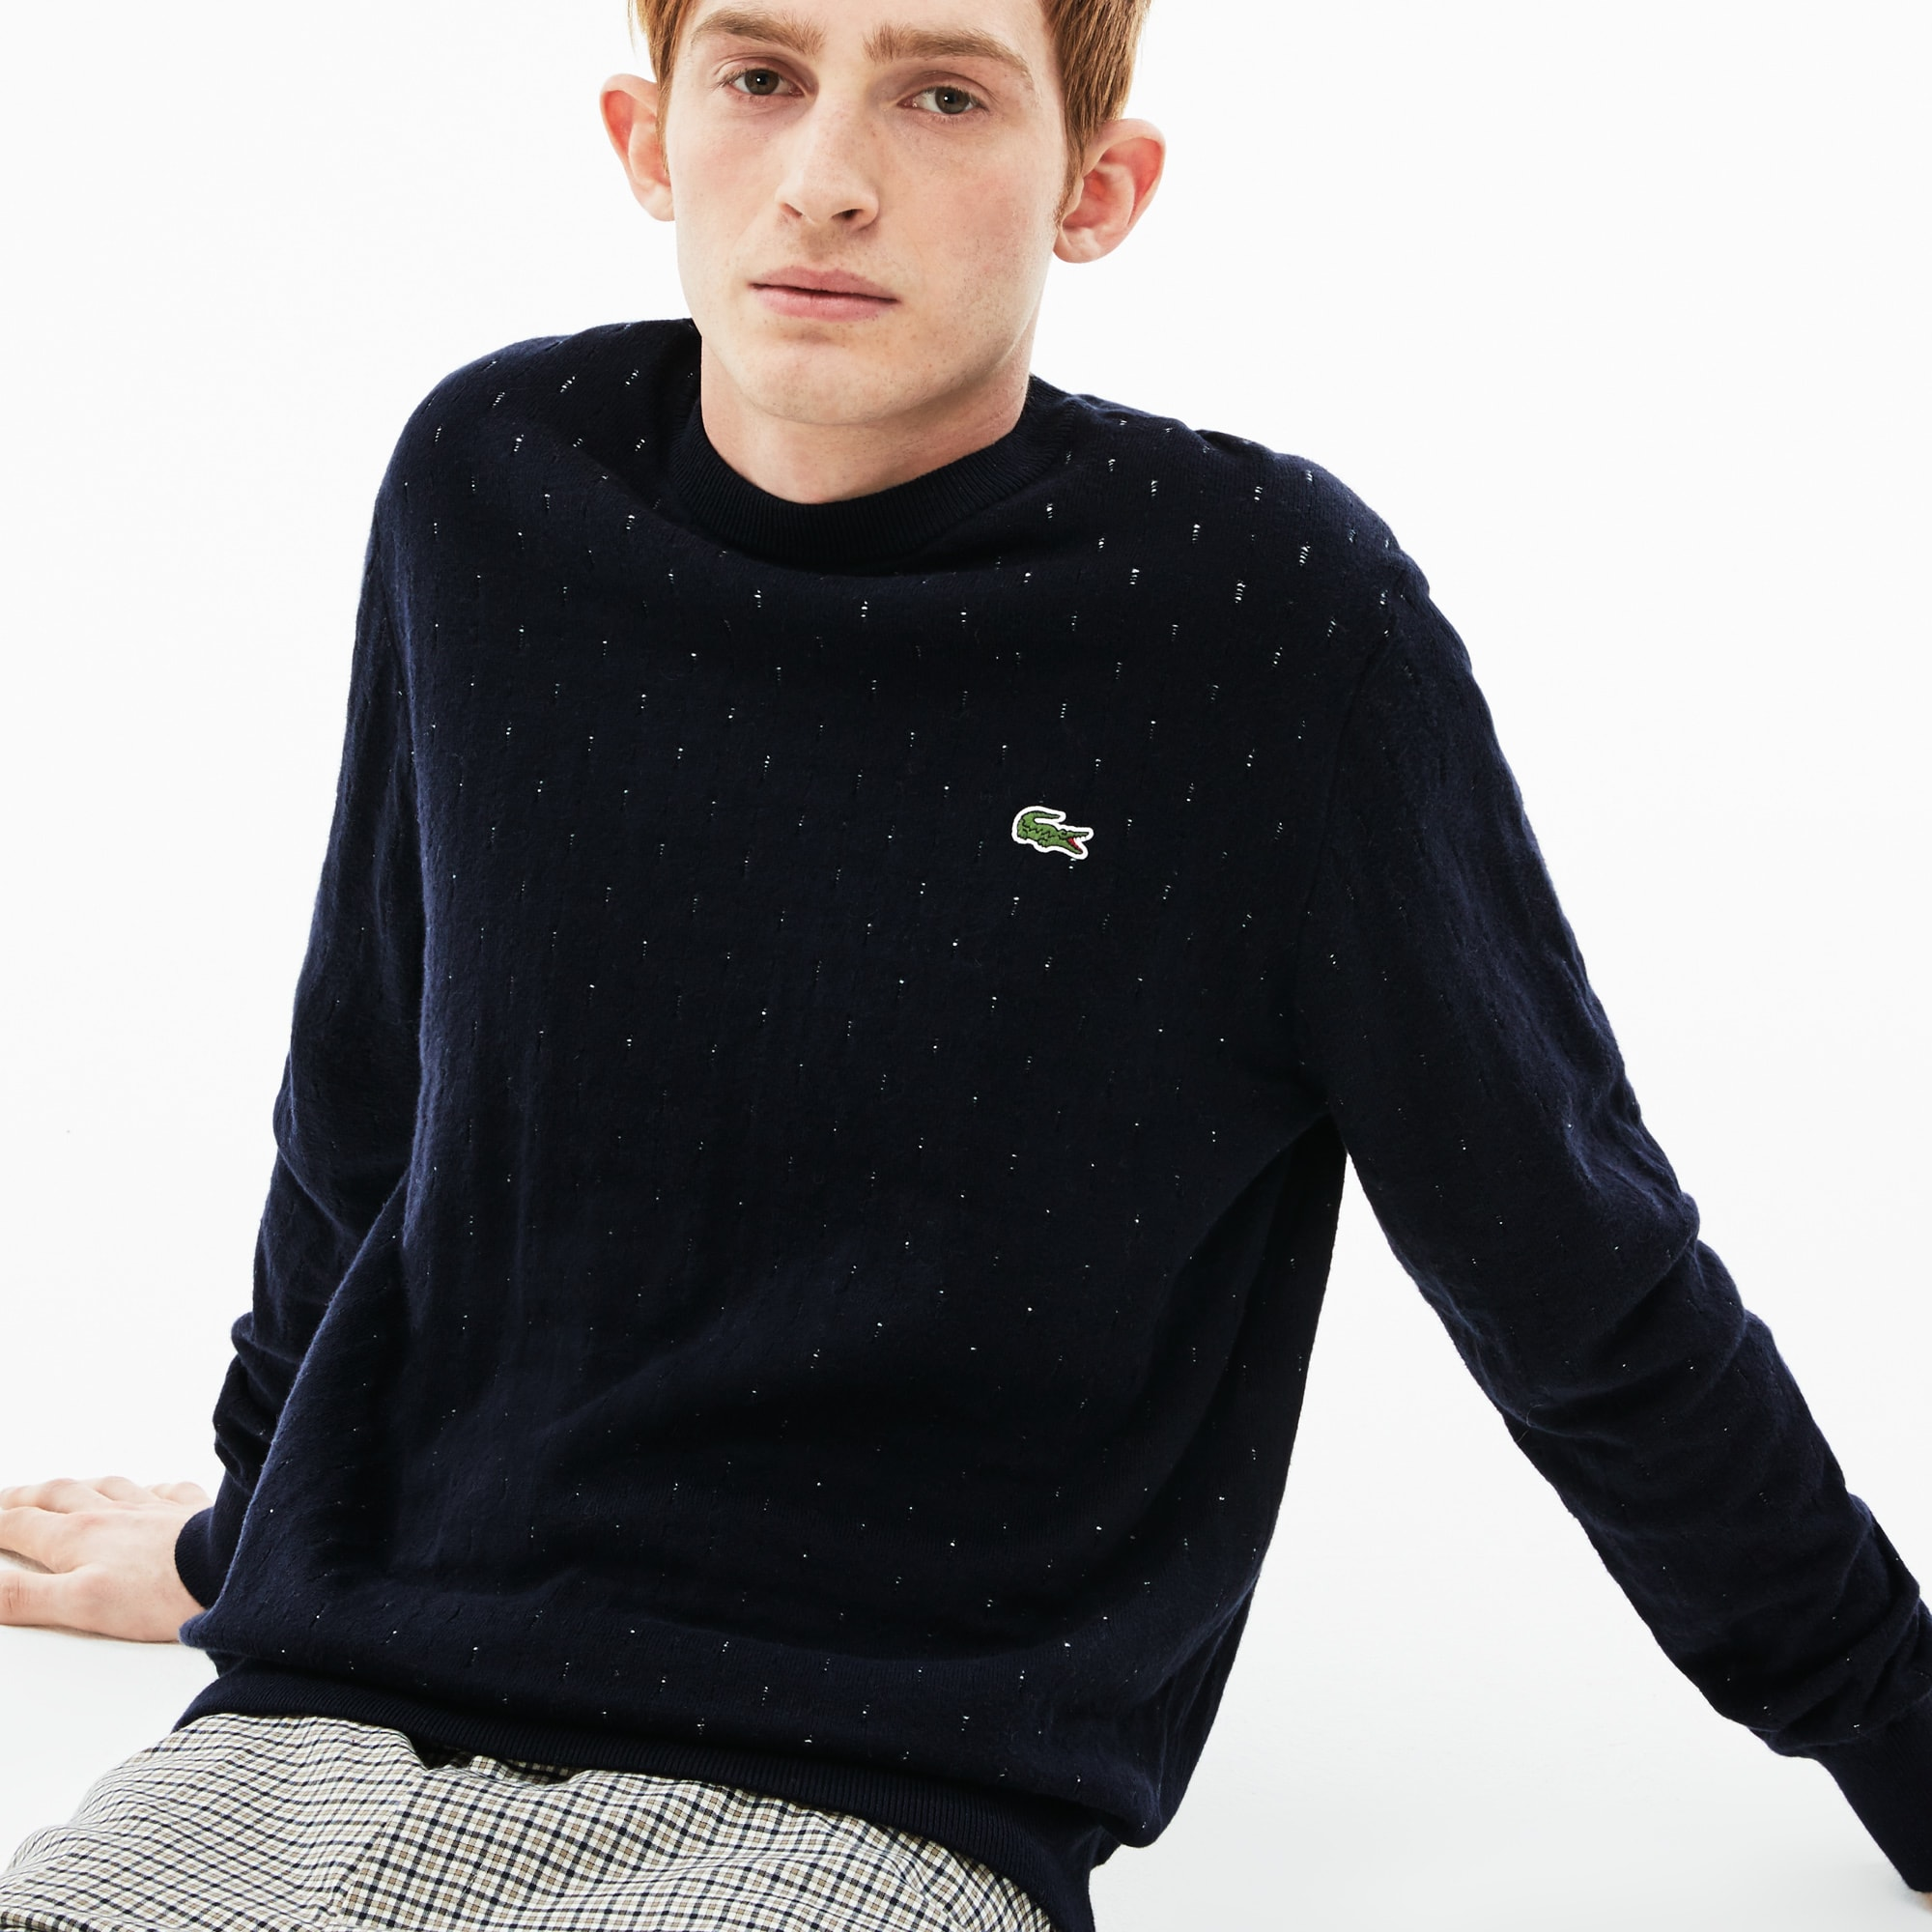 Men's LIVE Crew Neck Cotton And Cashmere Jacquard Sweater